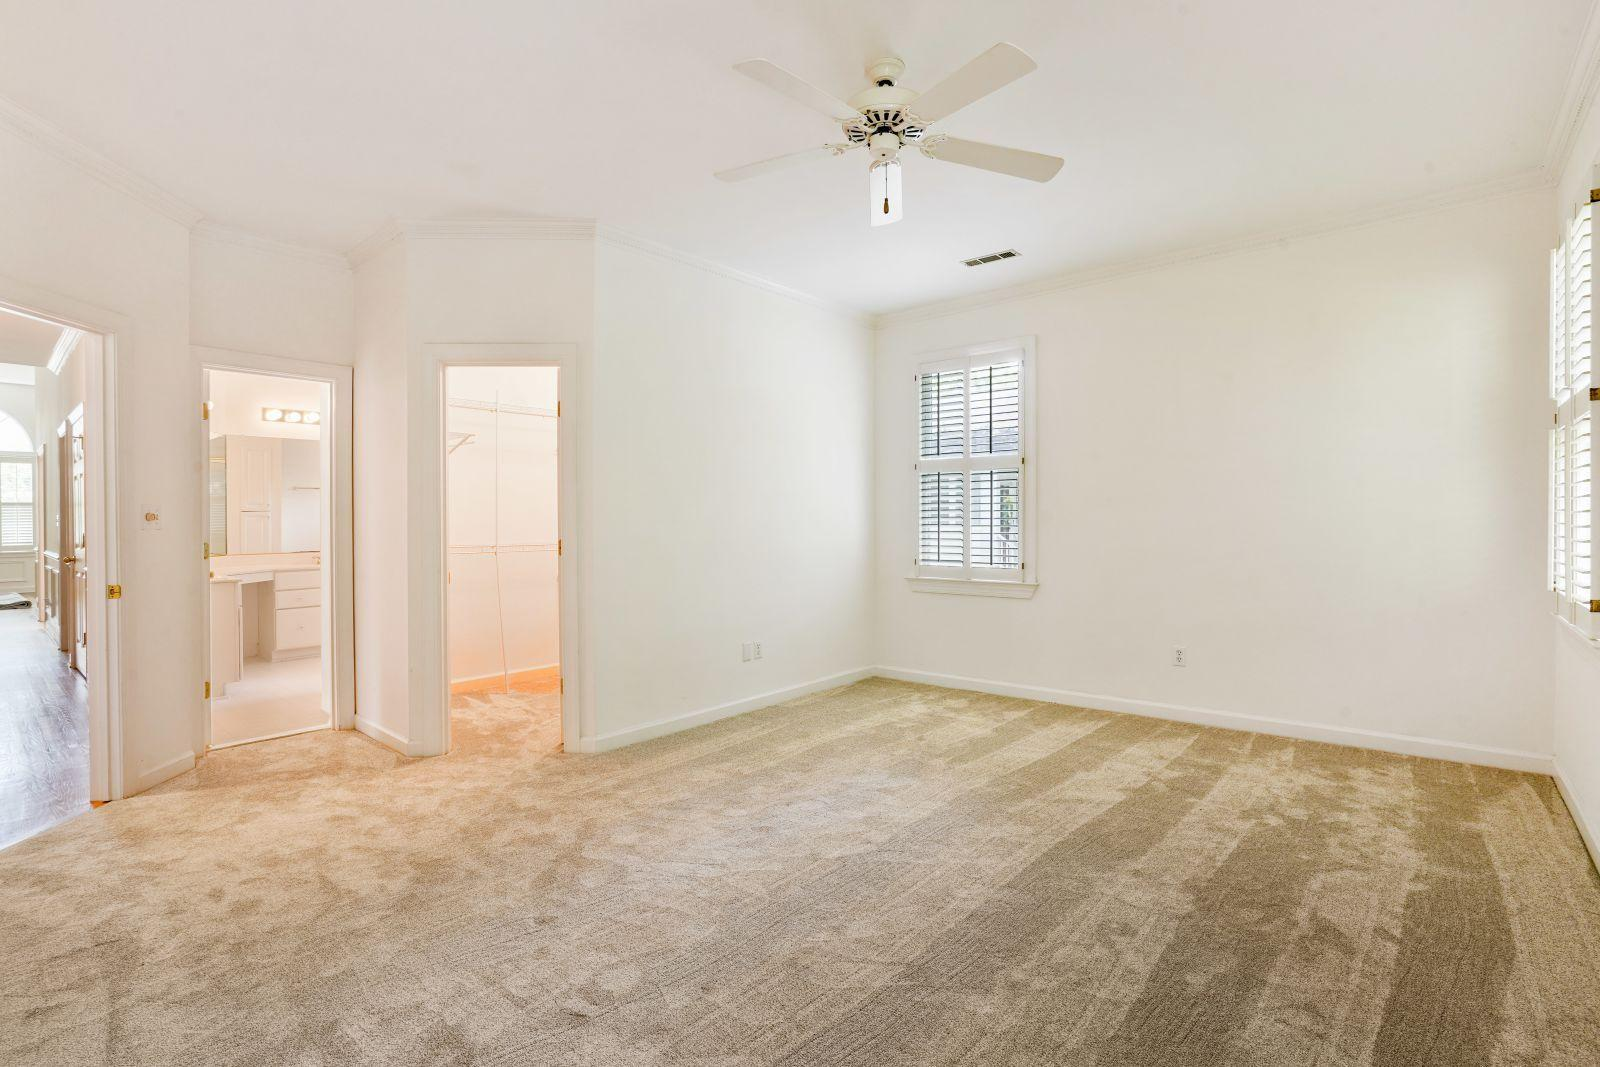 Simmons Pointe Homes For Sale - 1551 Ben Sawyer, Mount Pleasant, SC - 19